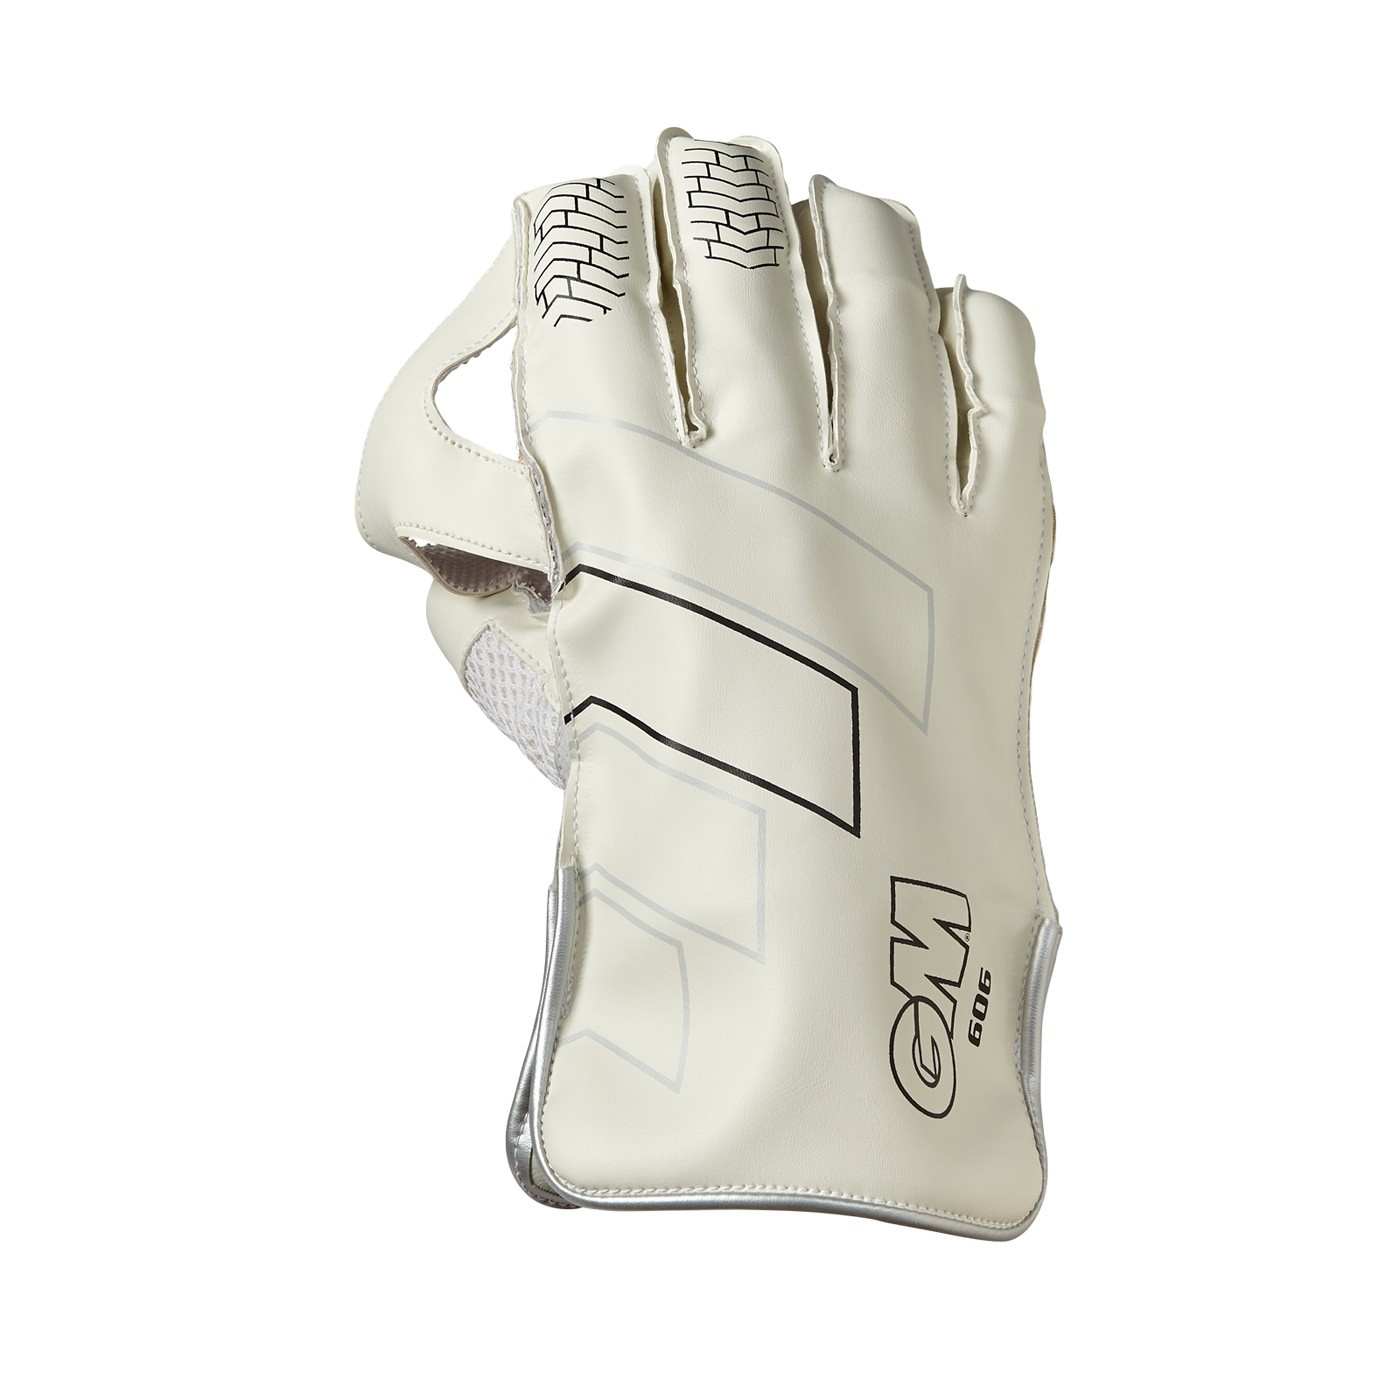 2020 Gunn and Moore 606 Wicket Keeping Gloves